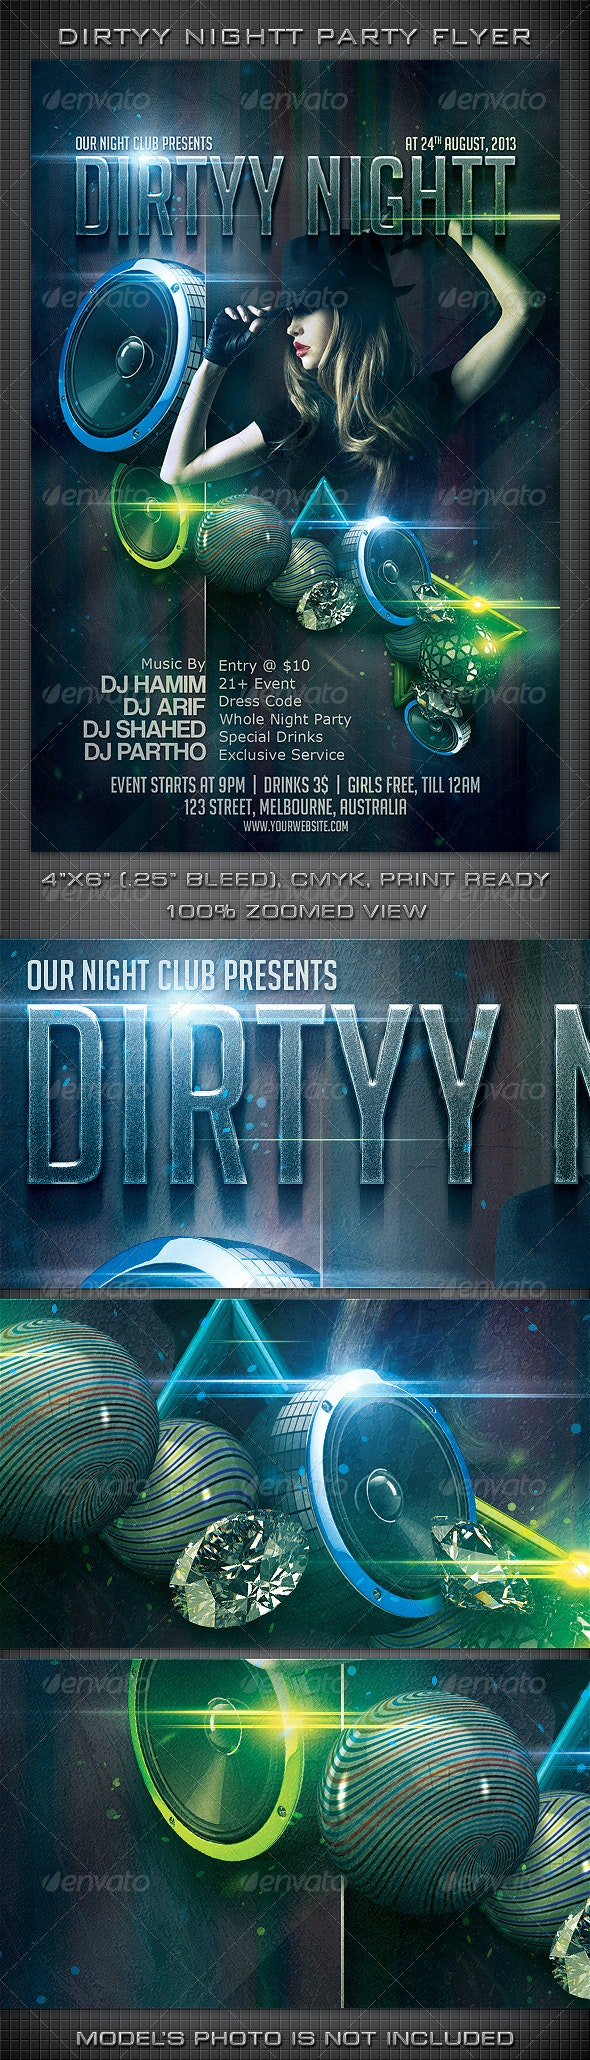 Dirtyy Nightt Party Flyer - Clubs & Parties Events